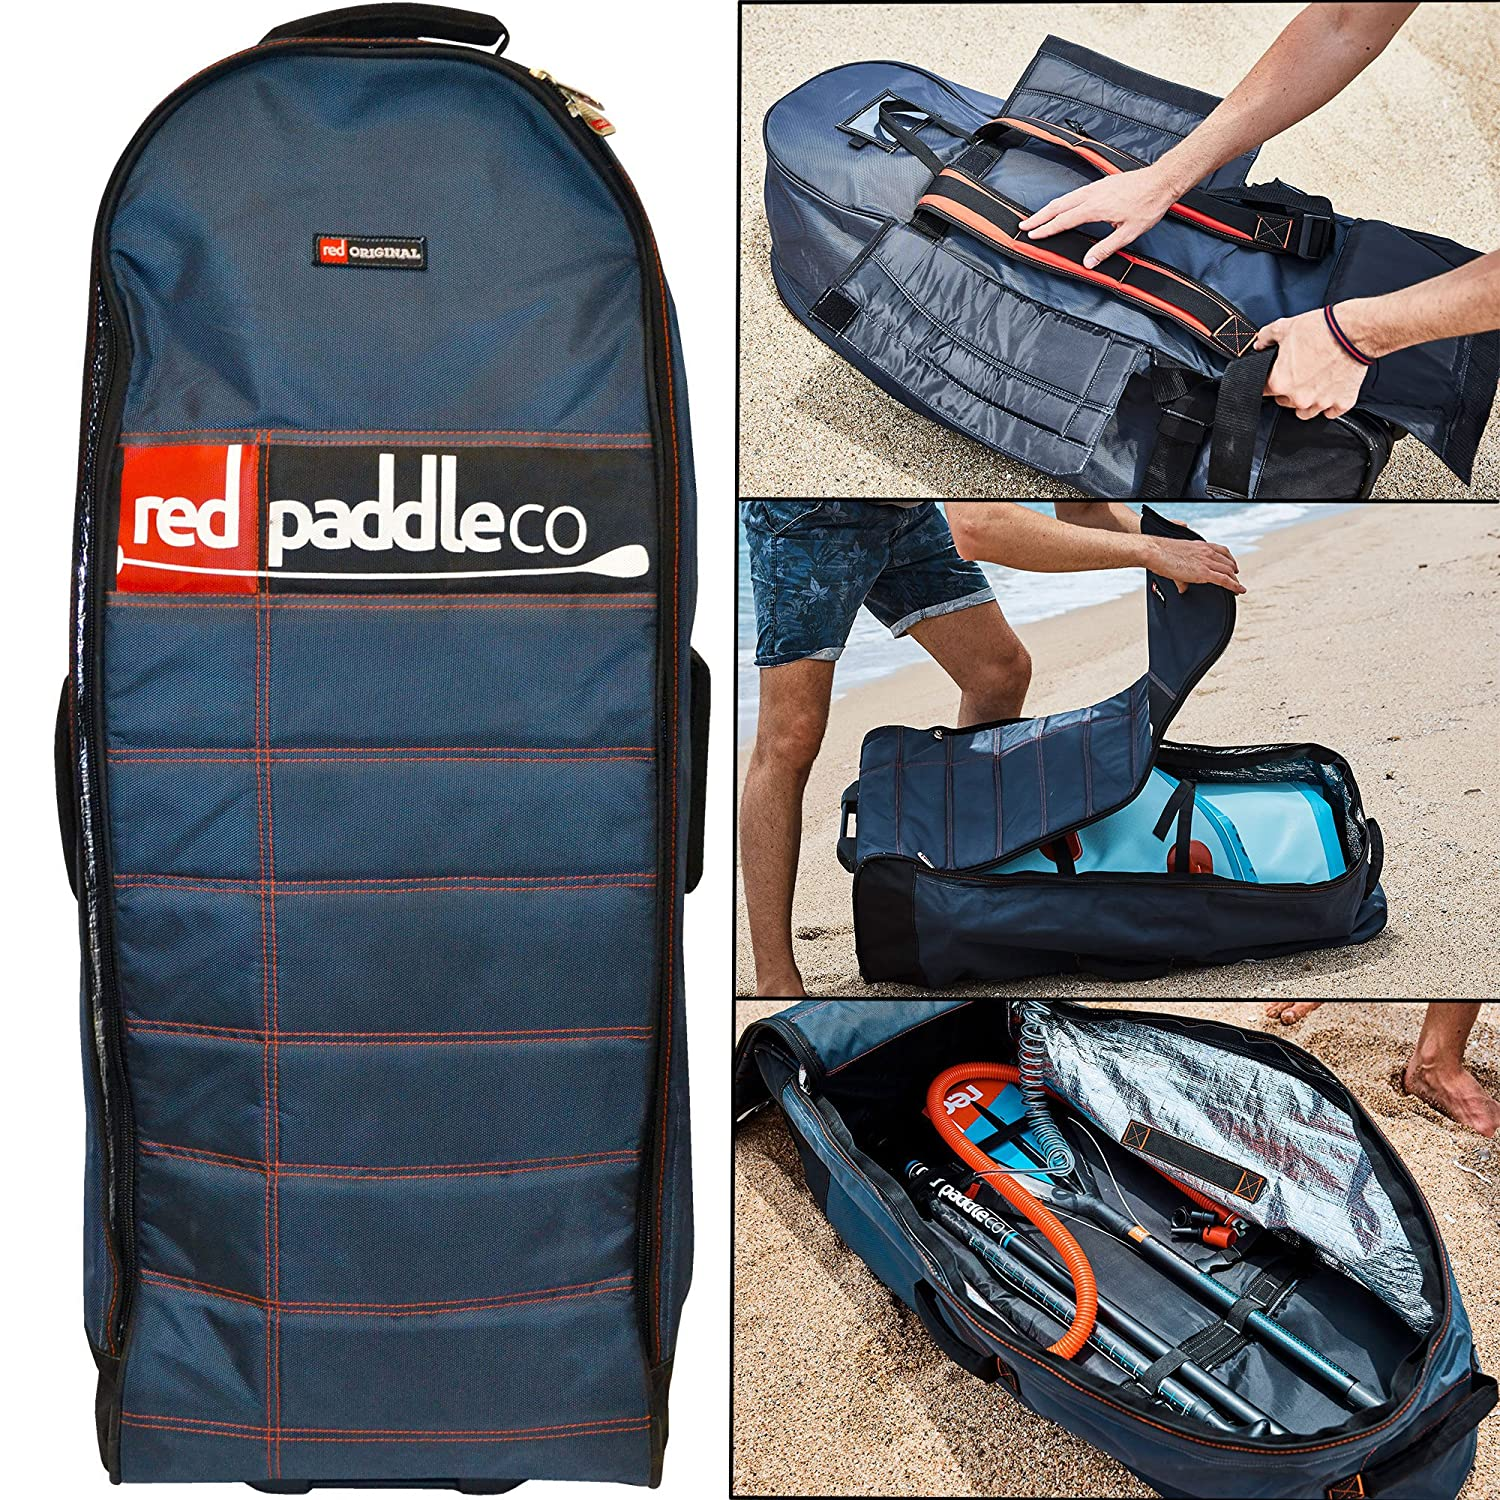 Pump Bag Paddle /& Leash Red Paddle Co 2018 Ride 108 Inflatable Stand Up Paddle Board